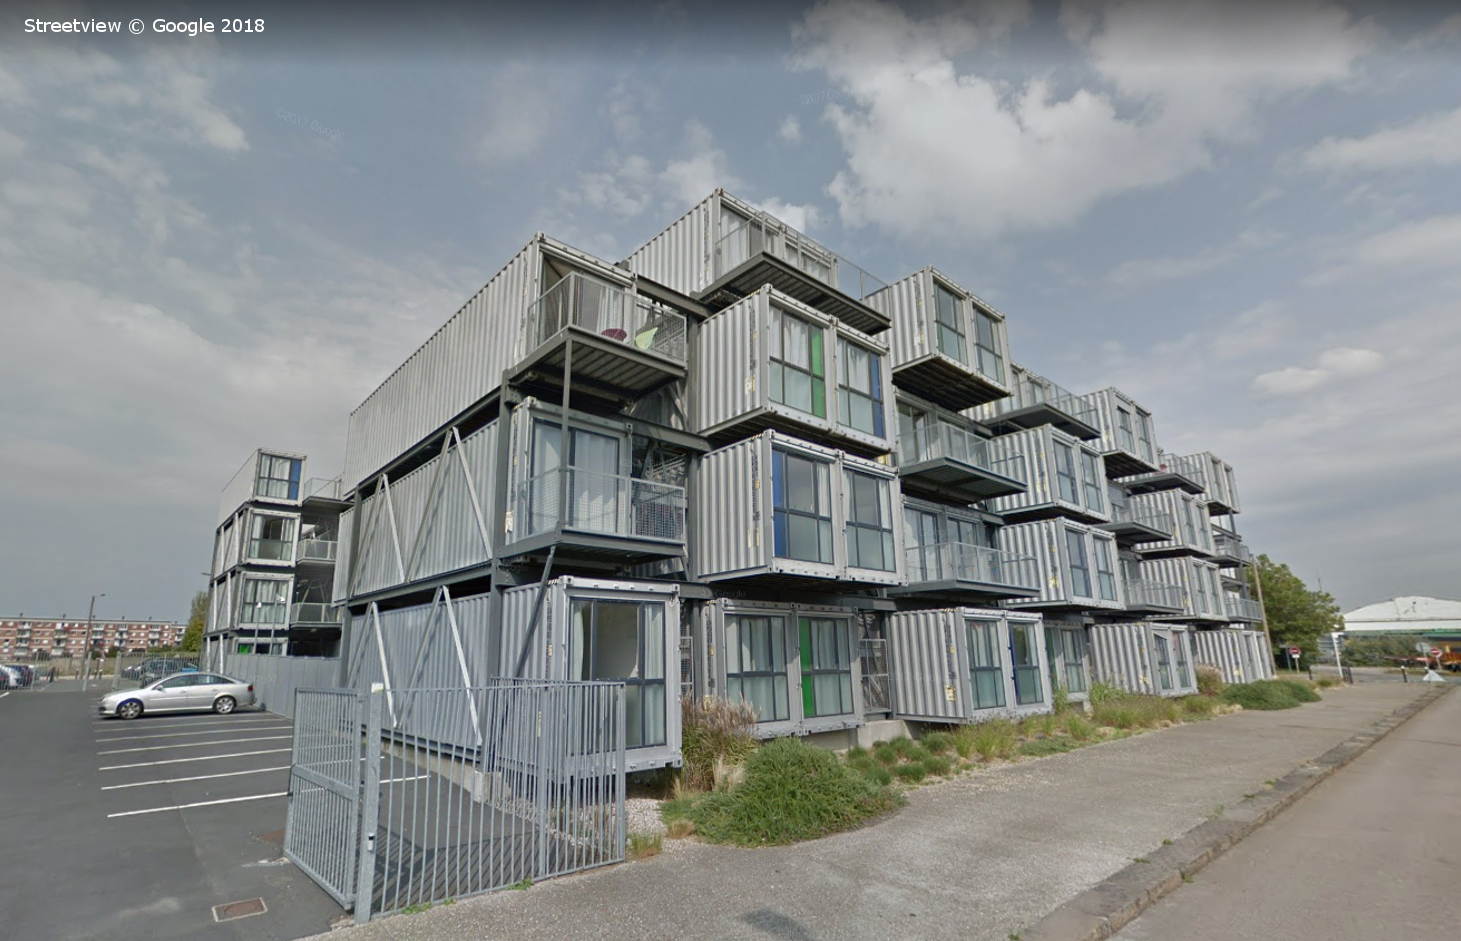 Cite a Docks student apartments, Le Havre France, Google Streetview